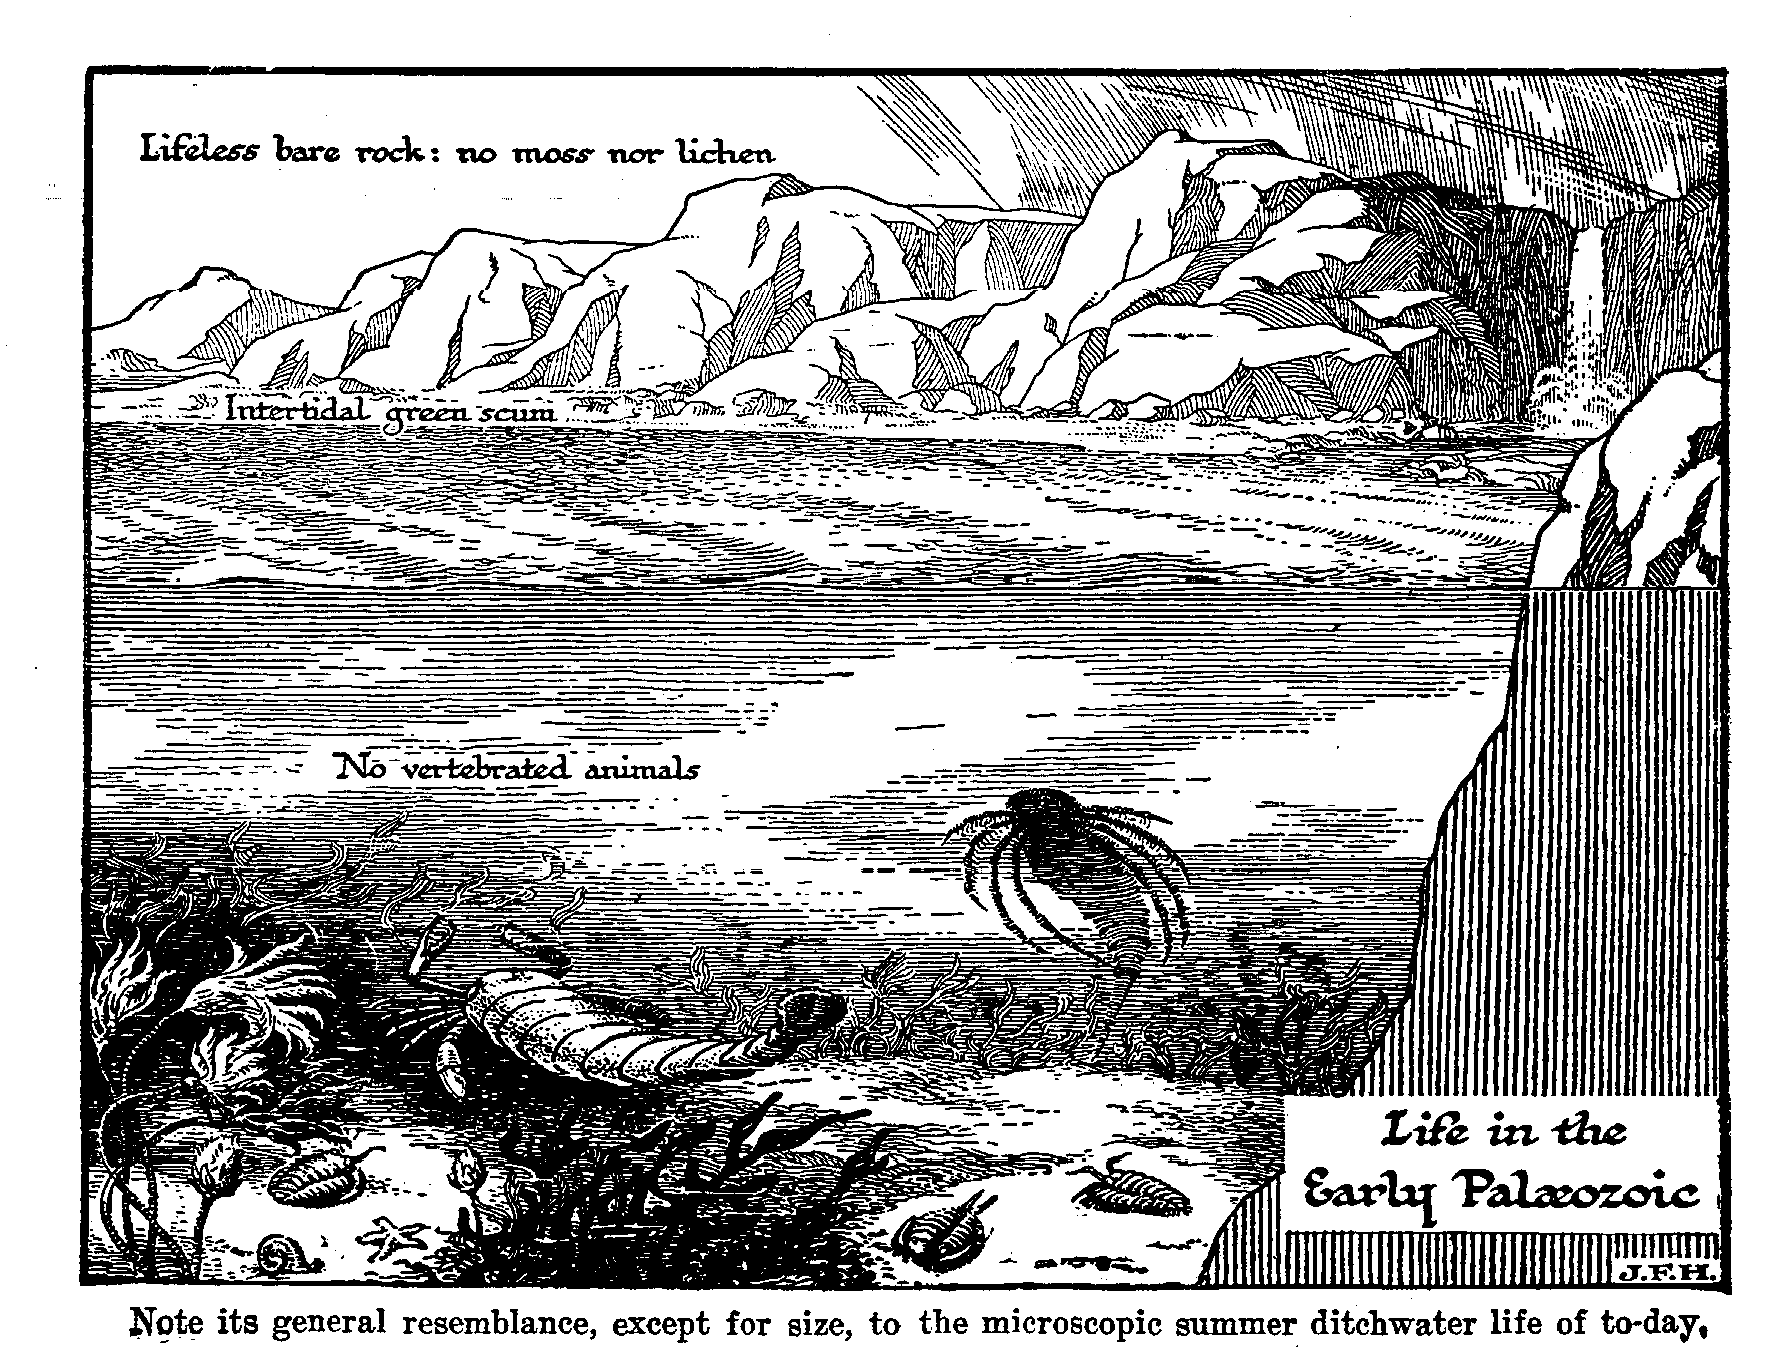 Figure 9: Life in the Early Paleozoic